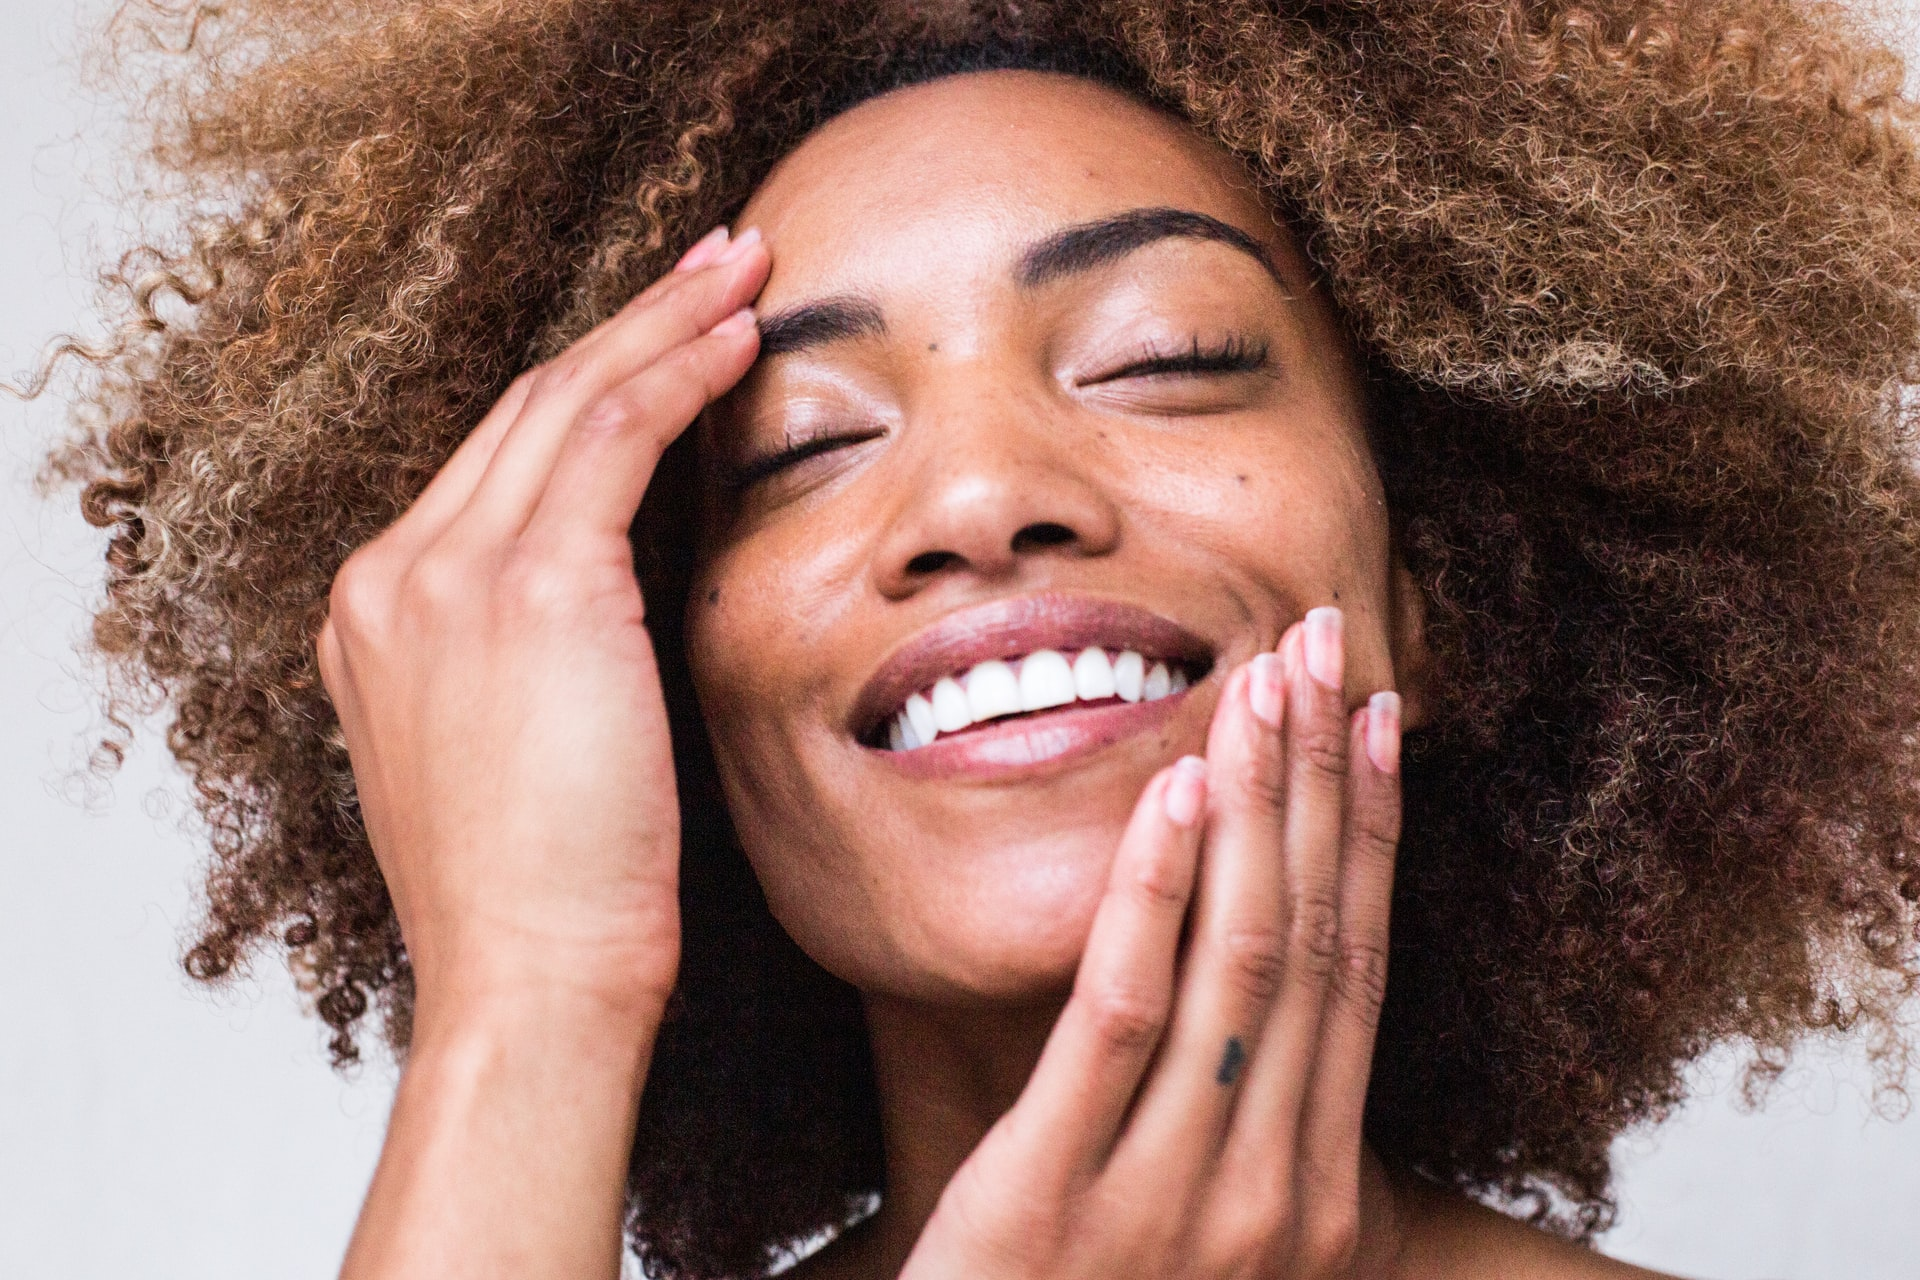 The Best Anti-Aging Creams & Serums to Add to Your Skincare Routine